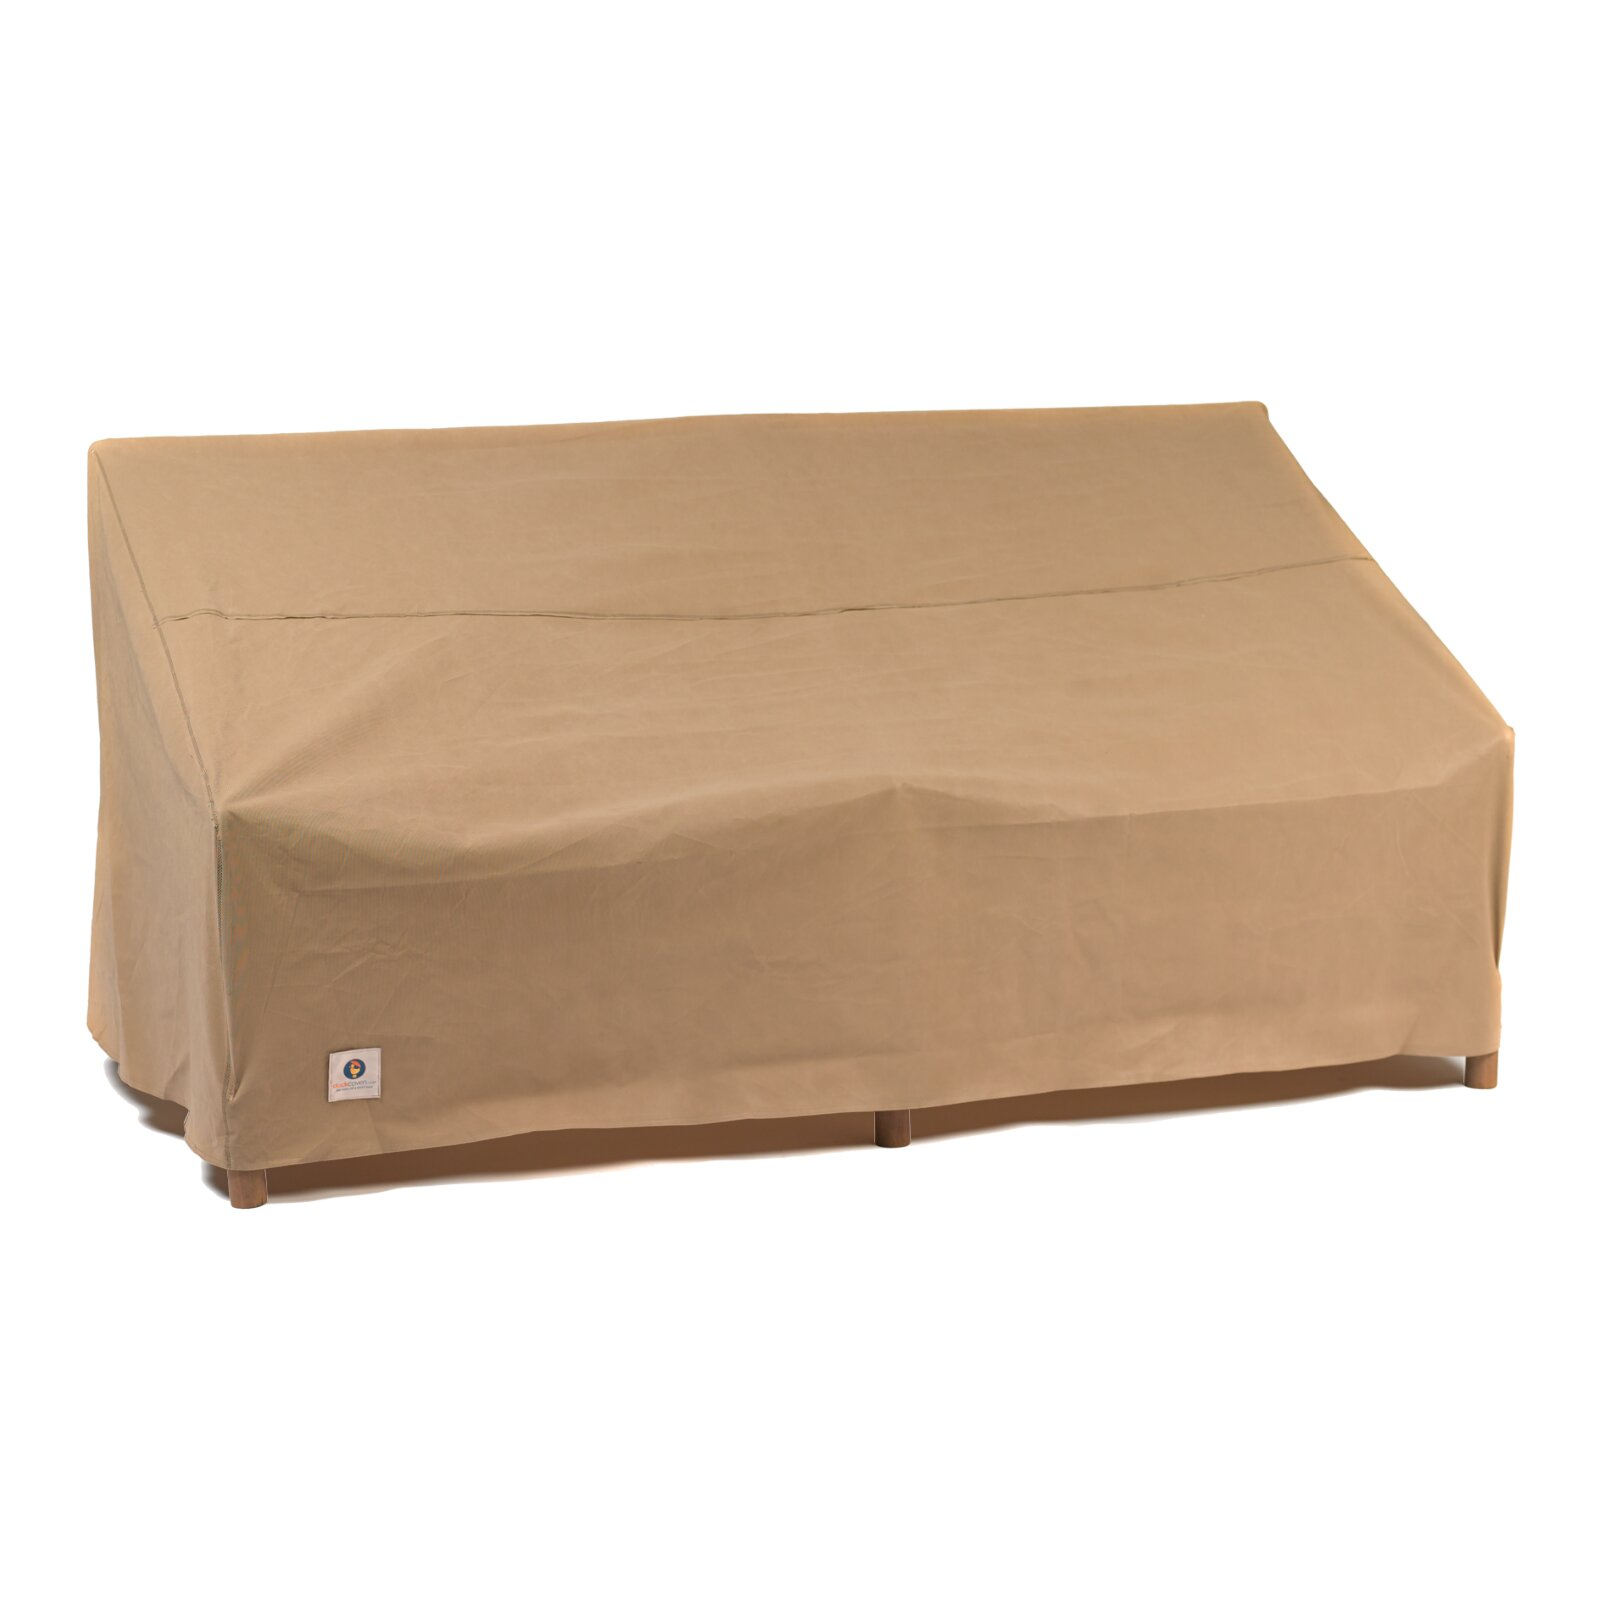 Duck covers essential patio sofa cover reviews wayfair for Wayfair garden furniture covers